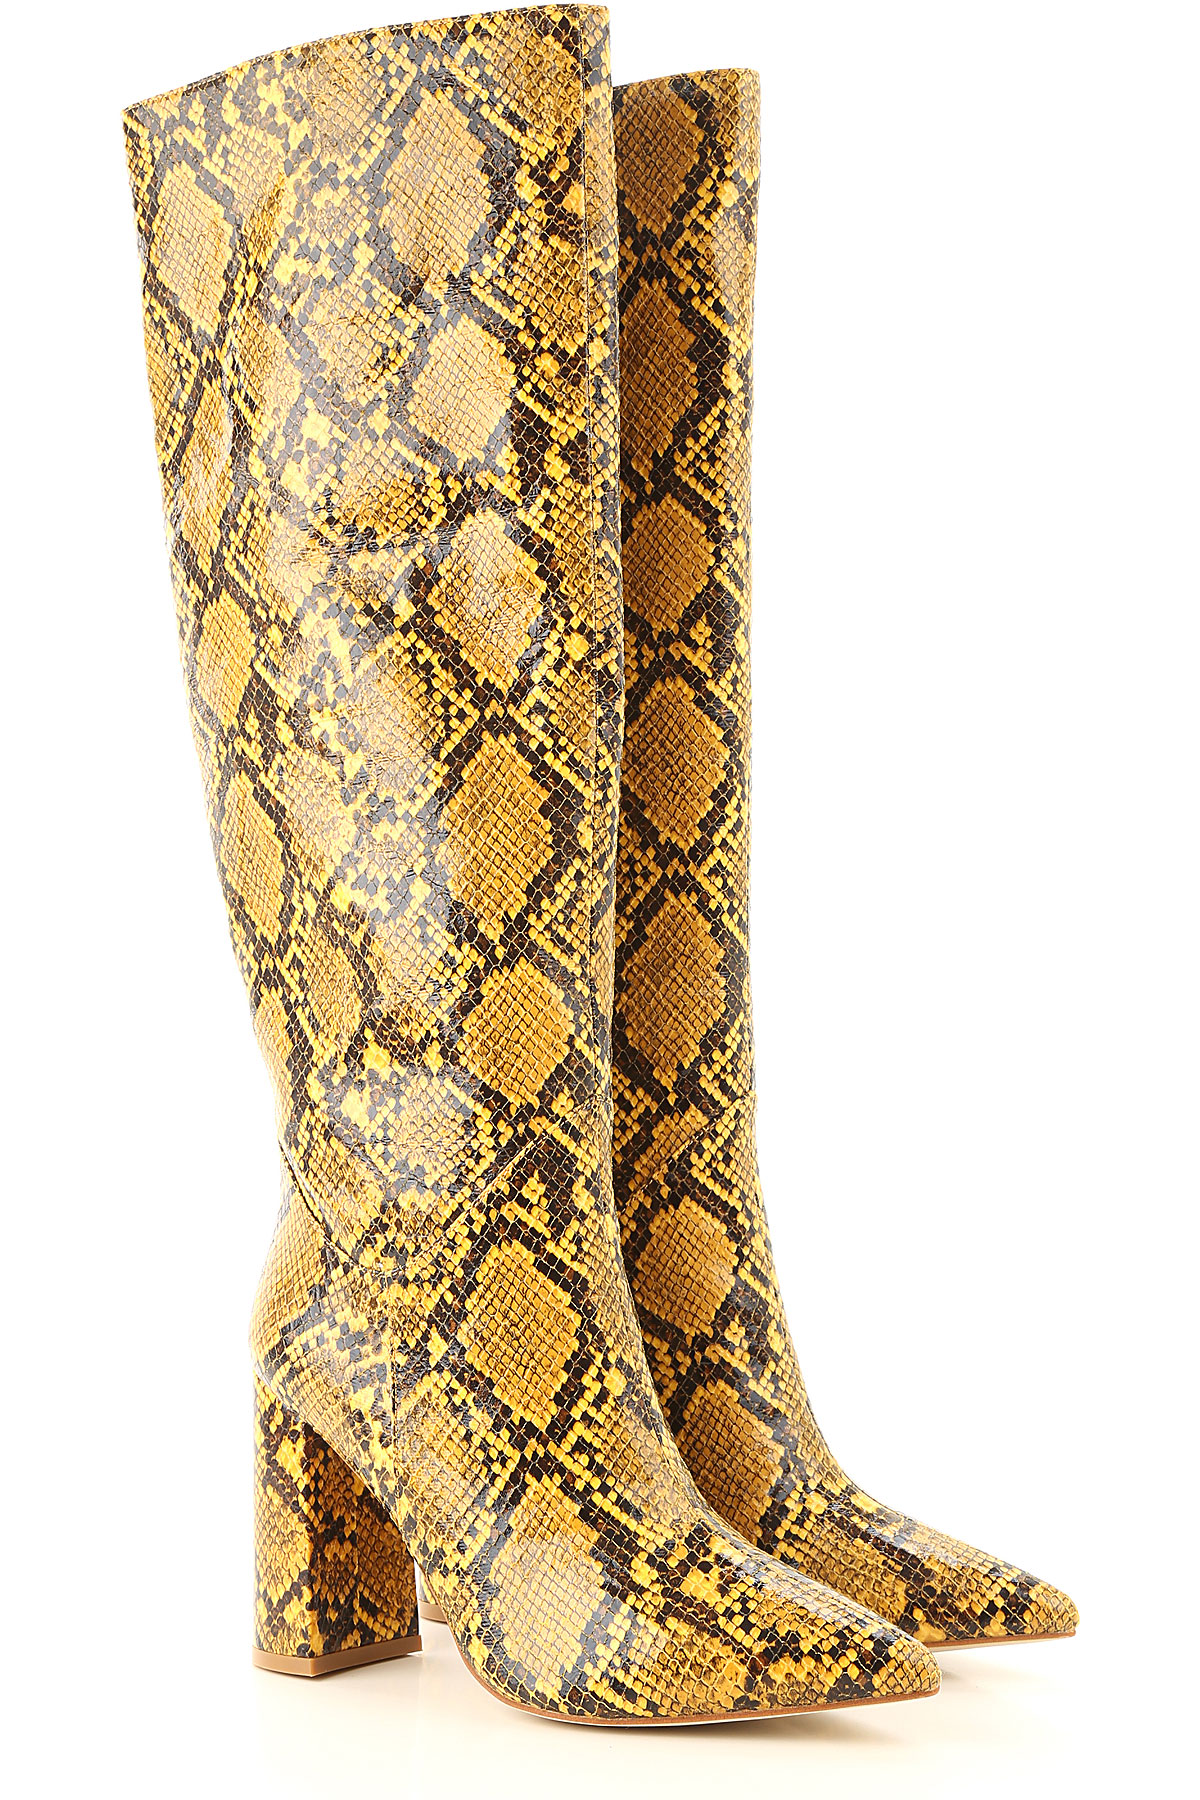 Jeffrey Campbell Boots for Women, Booties On Sale, Yellow, Eco Leather, 2019, 10 6 7 8 9